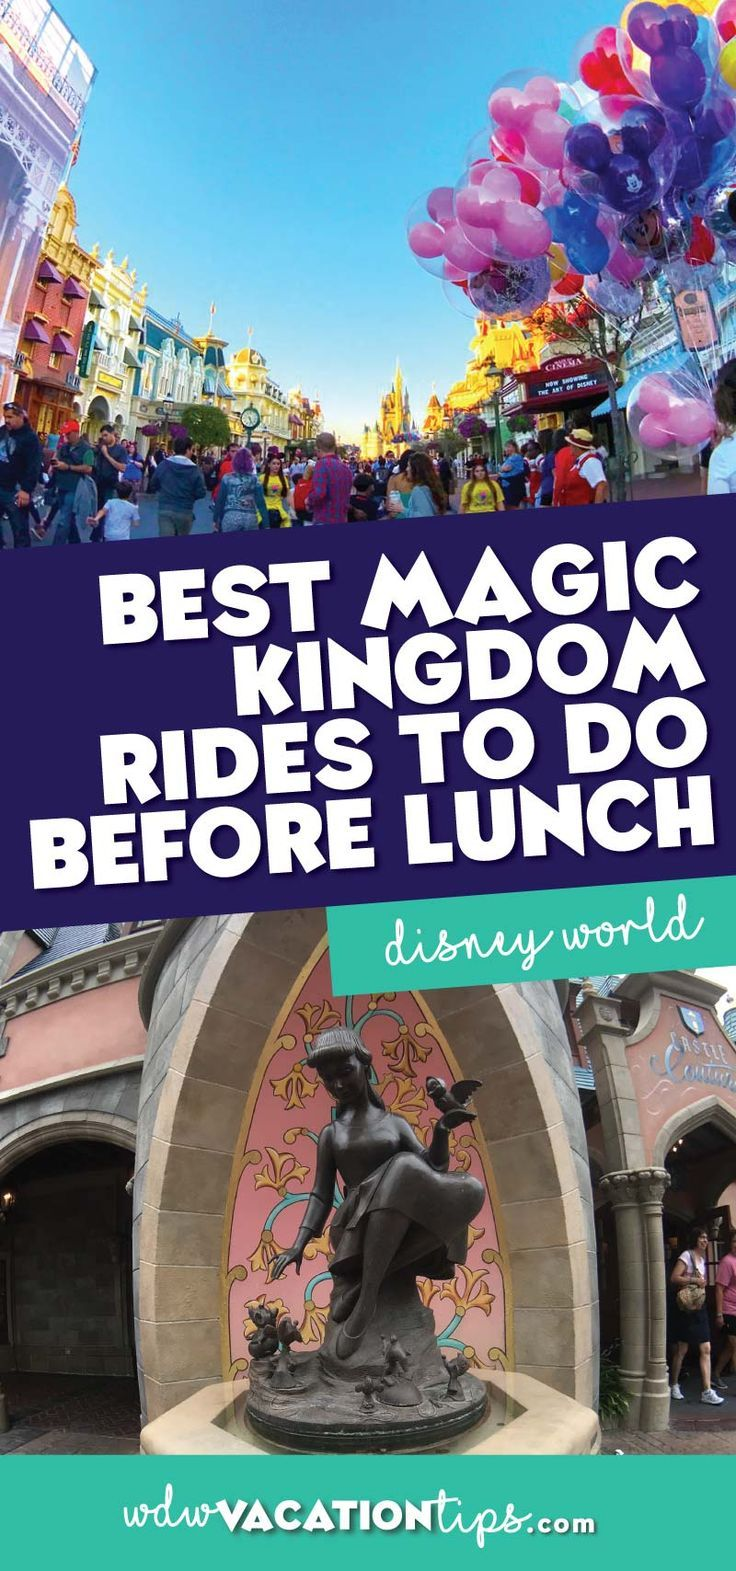 If you are limiting it to one day at the Magic Kingdom here is our recommendation of Magic Kingdom rides to do before lunch. So you can get more done in less time at Disney World!